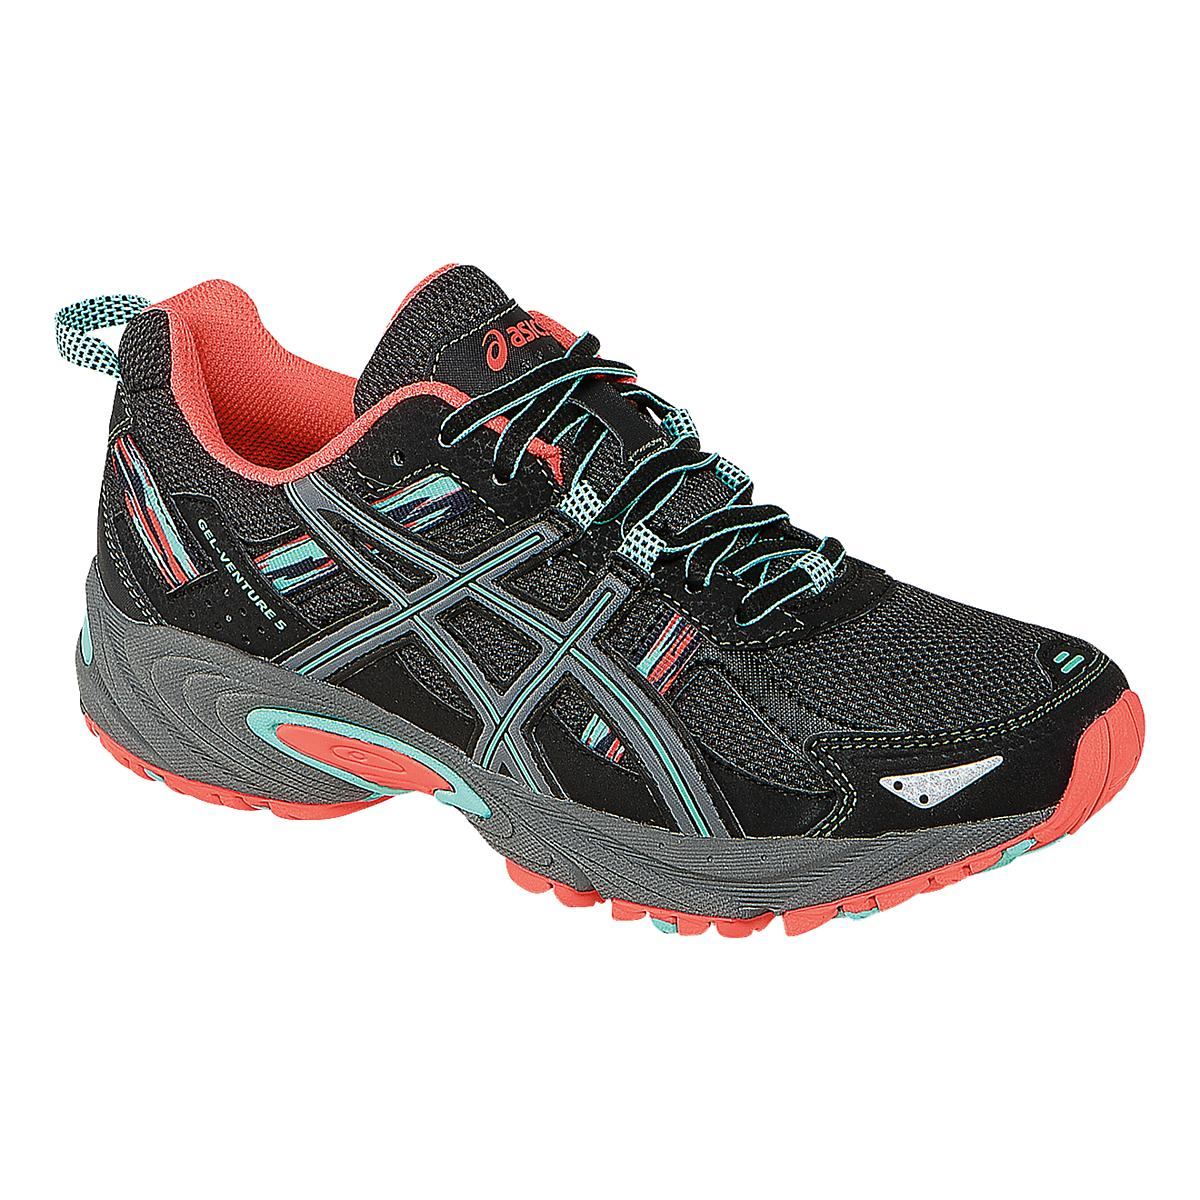 a6c27f6fca2 Womens ASICS GEL-Venture 5 Trail Running Shoe at Road Runner Sports